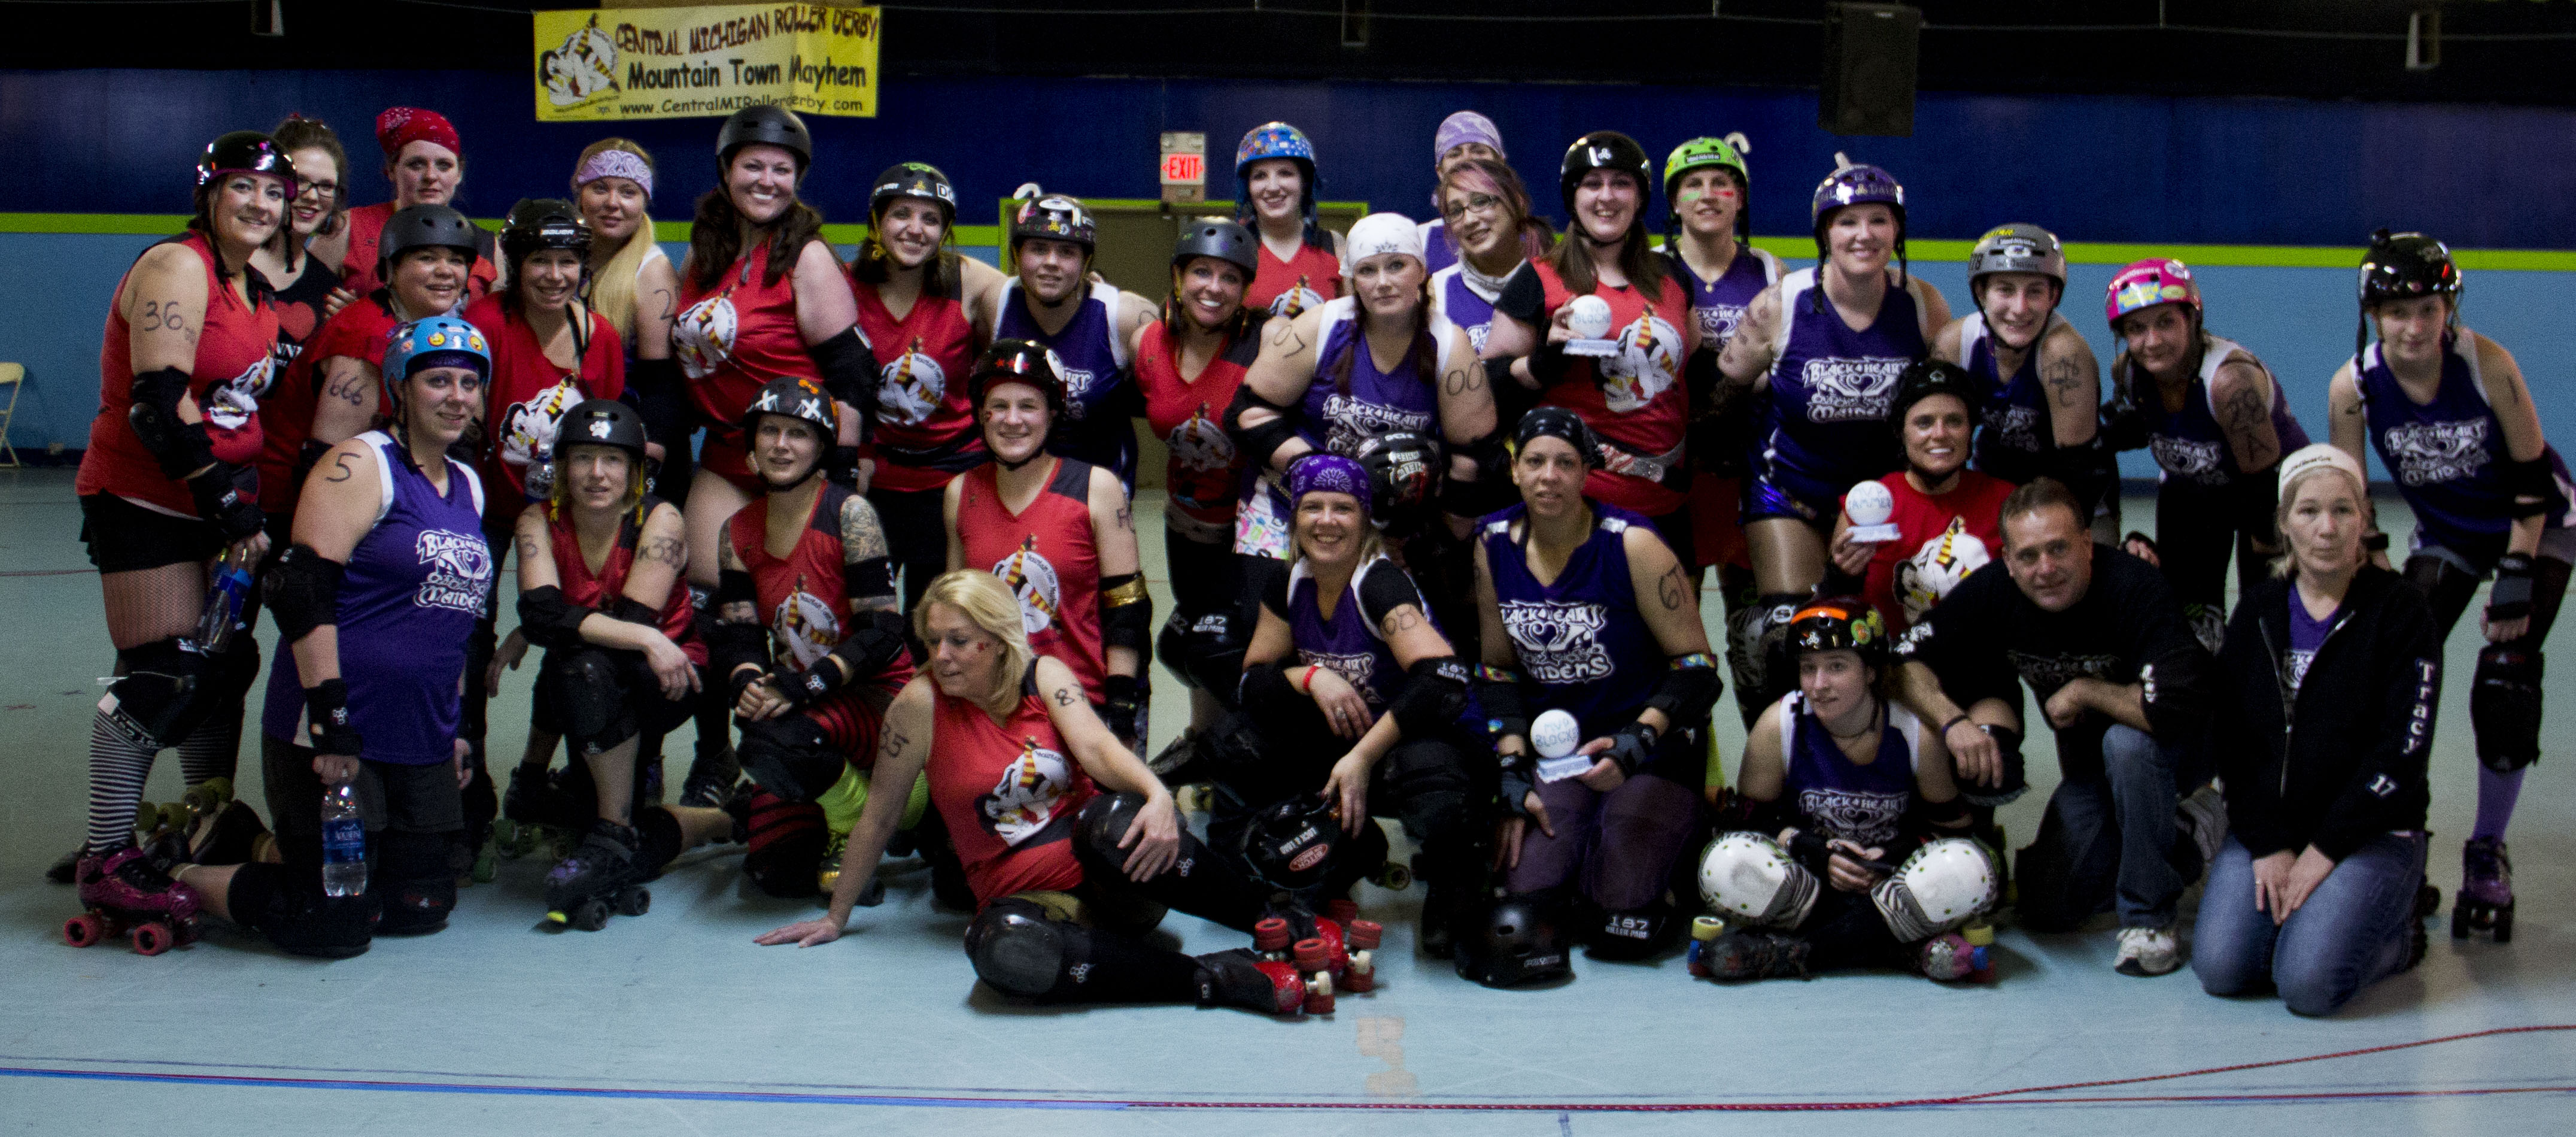 rollerderby1